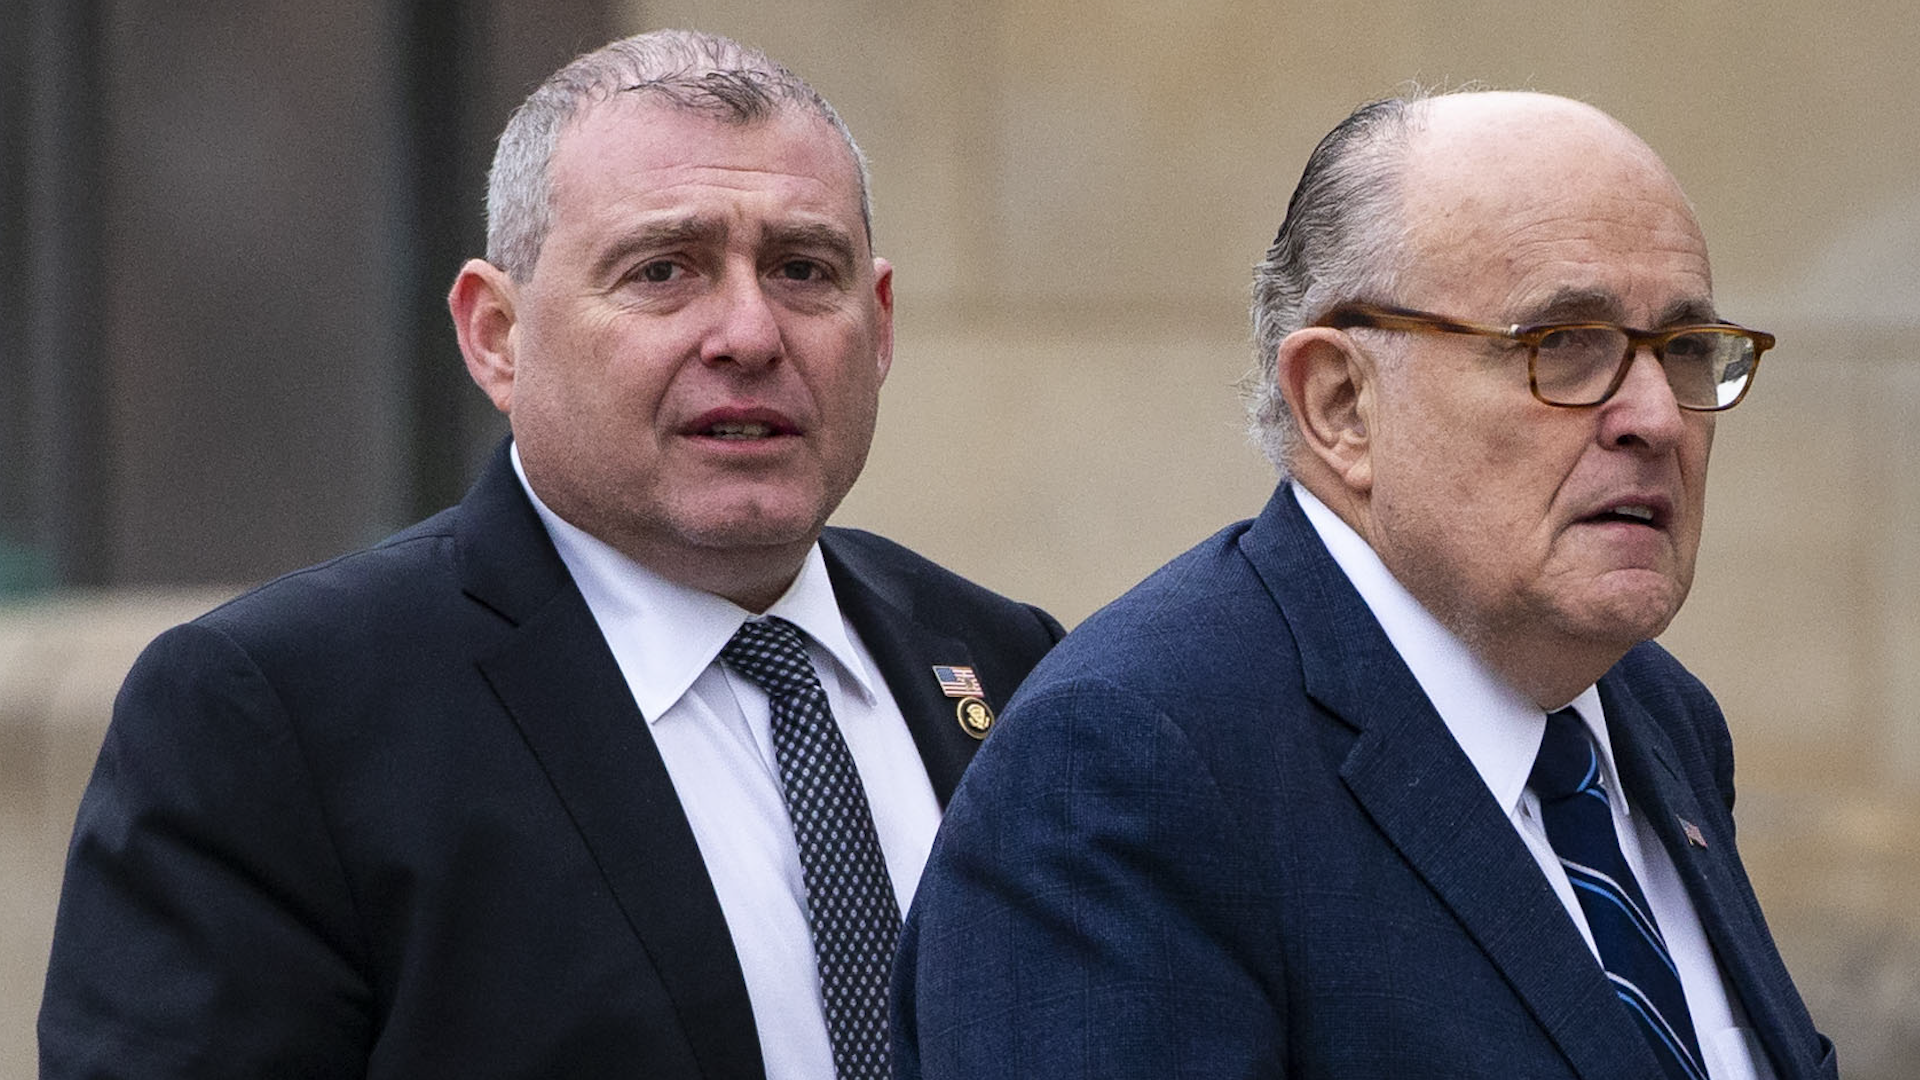 Rudy Giuliani claims Lev Parnas lied stupidly in explosive interviews